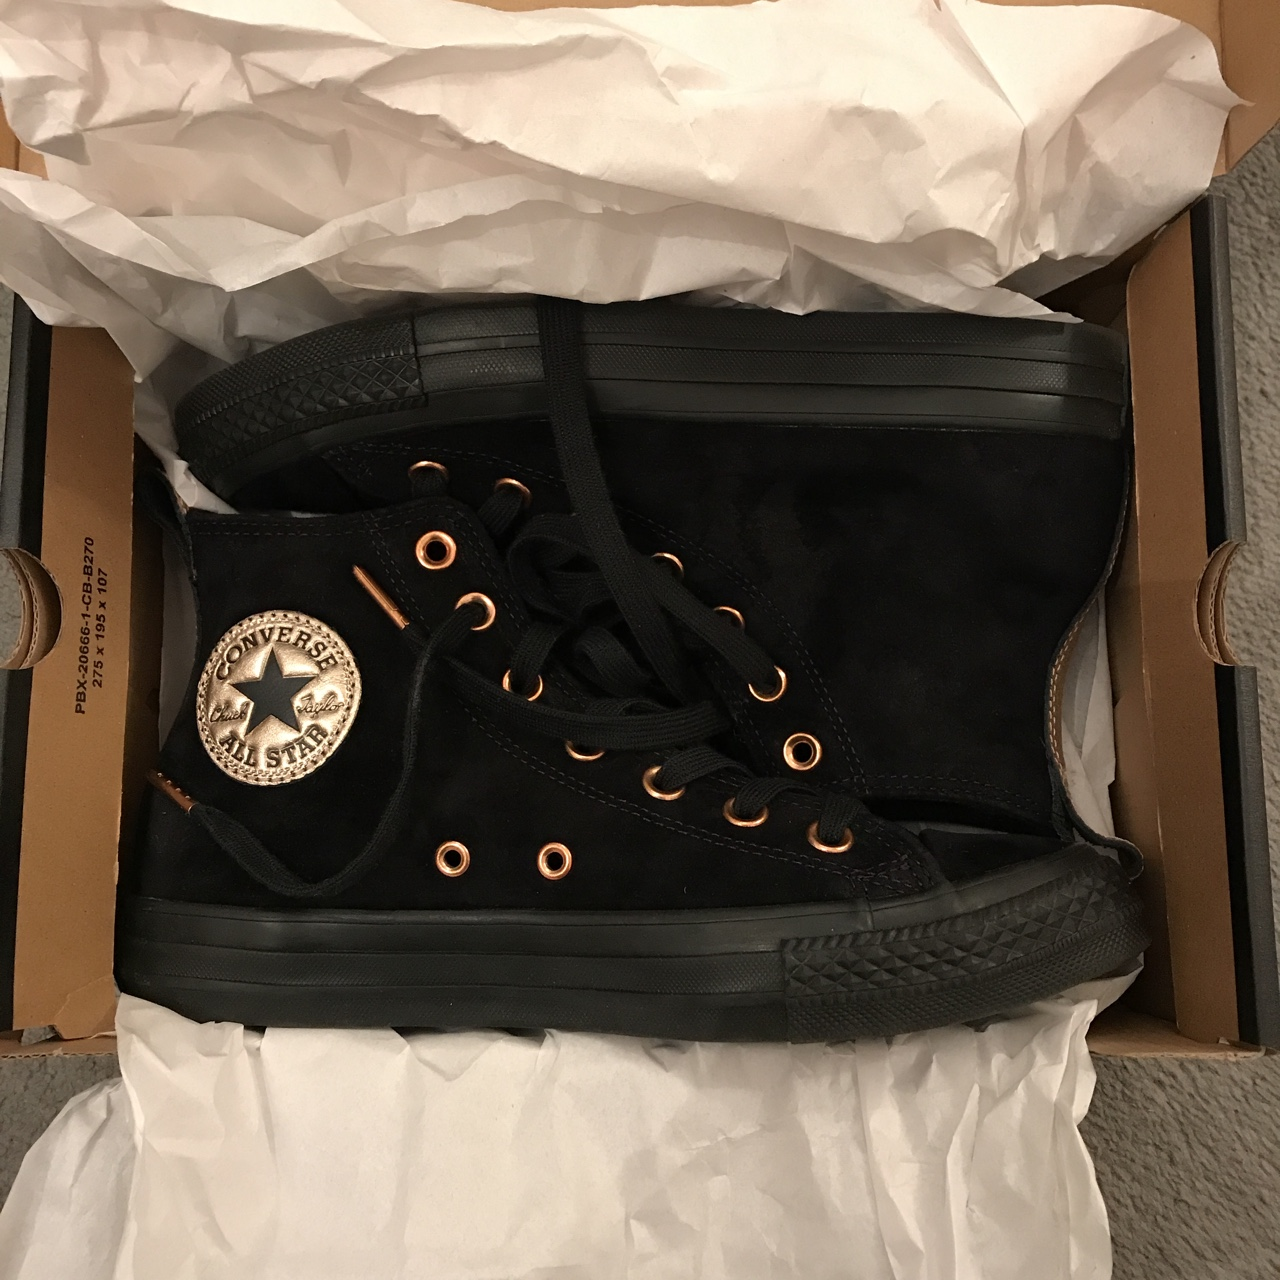 Black suede converse high tops with